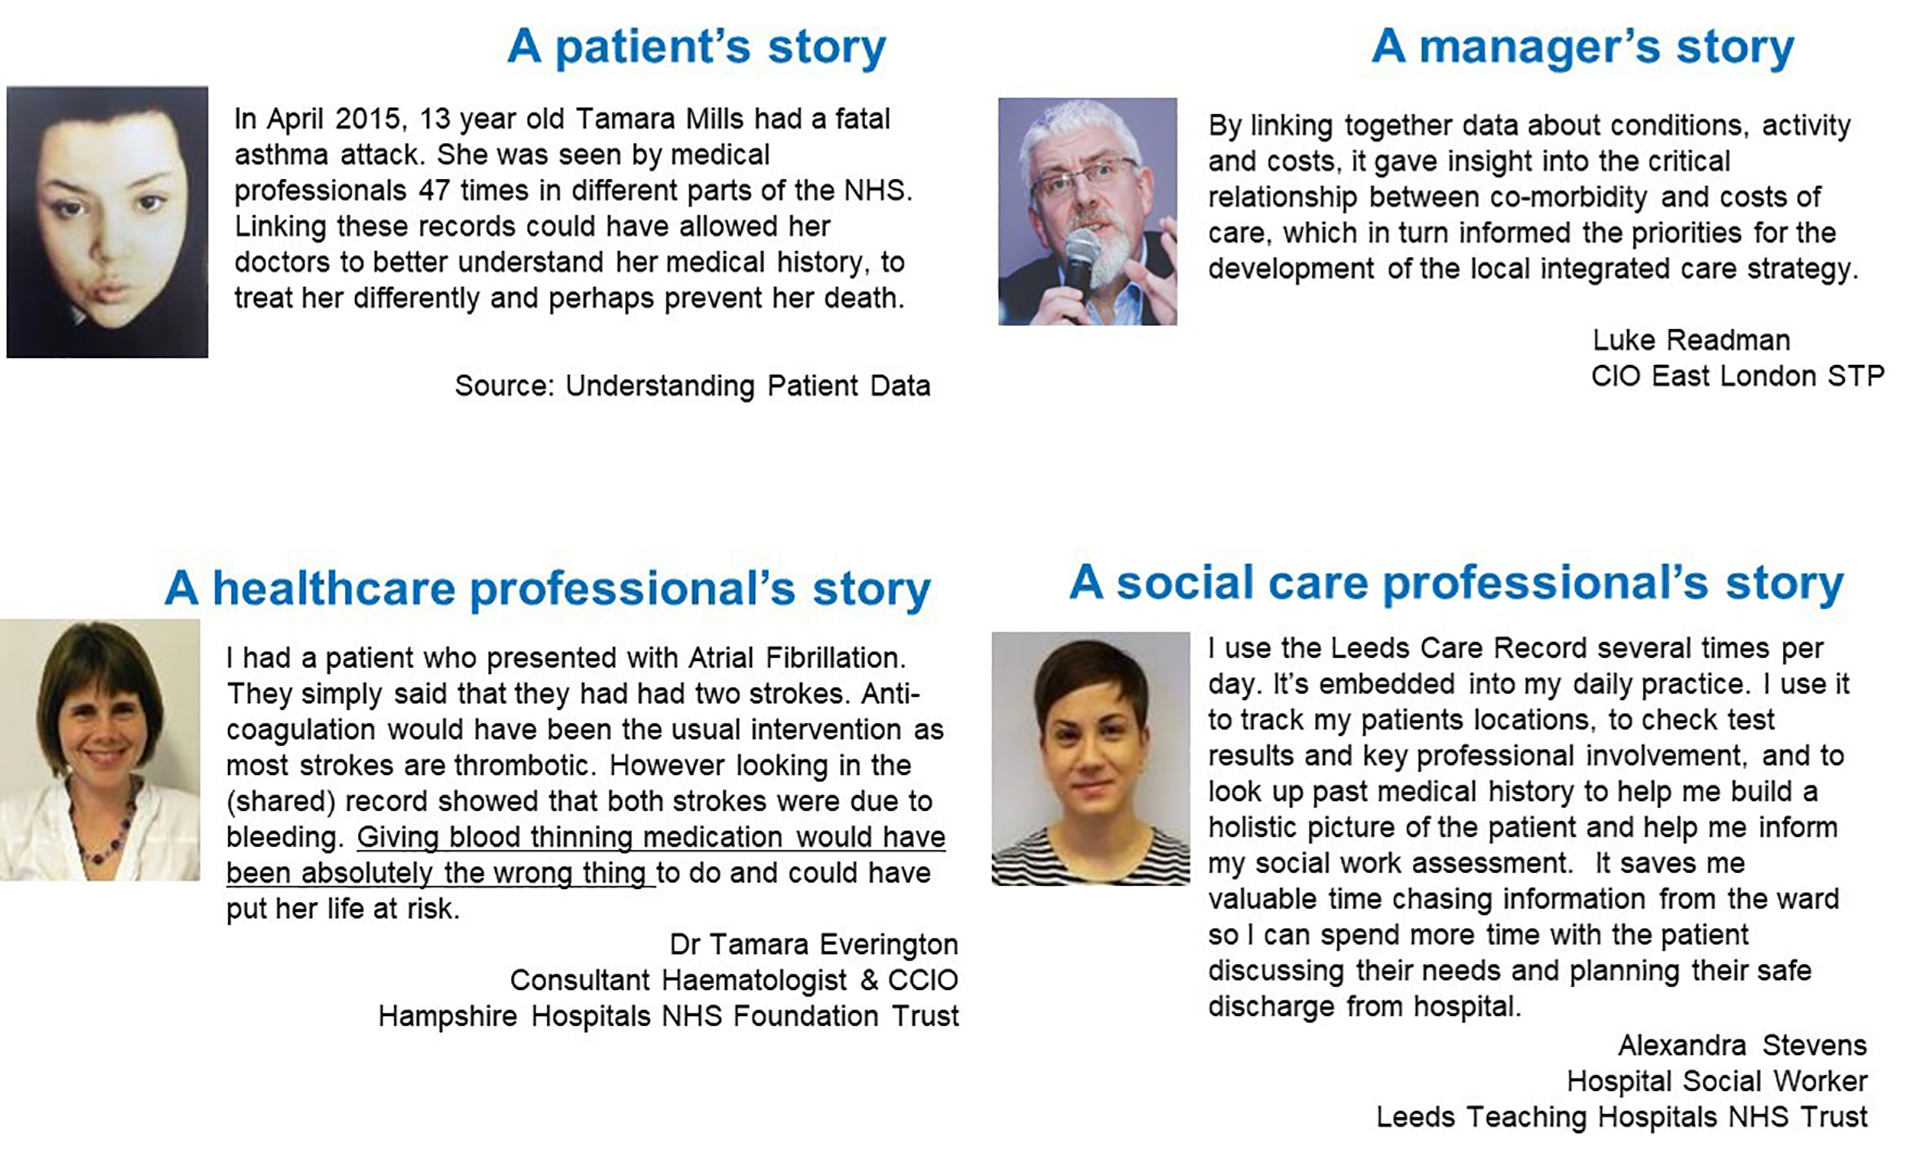 Four case studies describing a patient's story, a manager's story, a healthcare professional's story and a social care professional's story